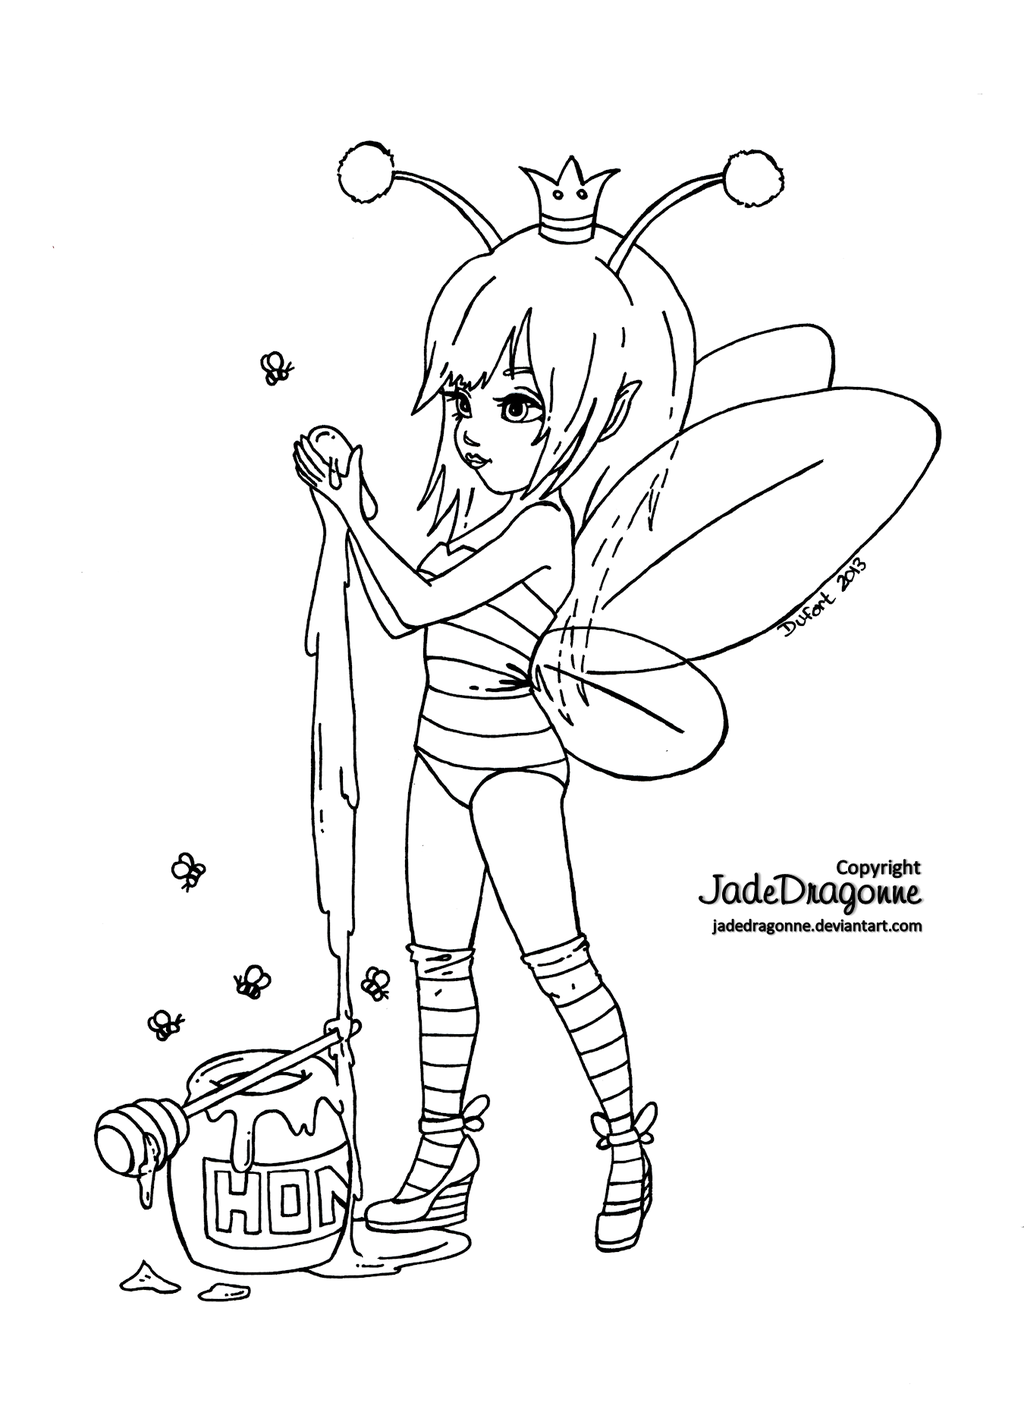 Queen Bee Lineart By Jadedragonne On Deviantart Fairy Coloring Pages Cute Coloring Pages Fairy Coloring